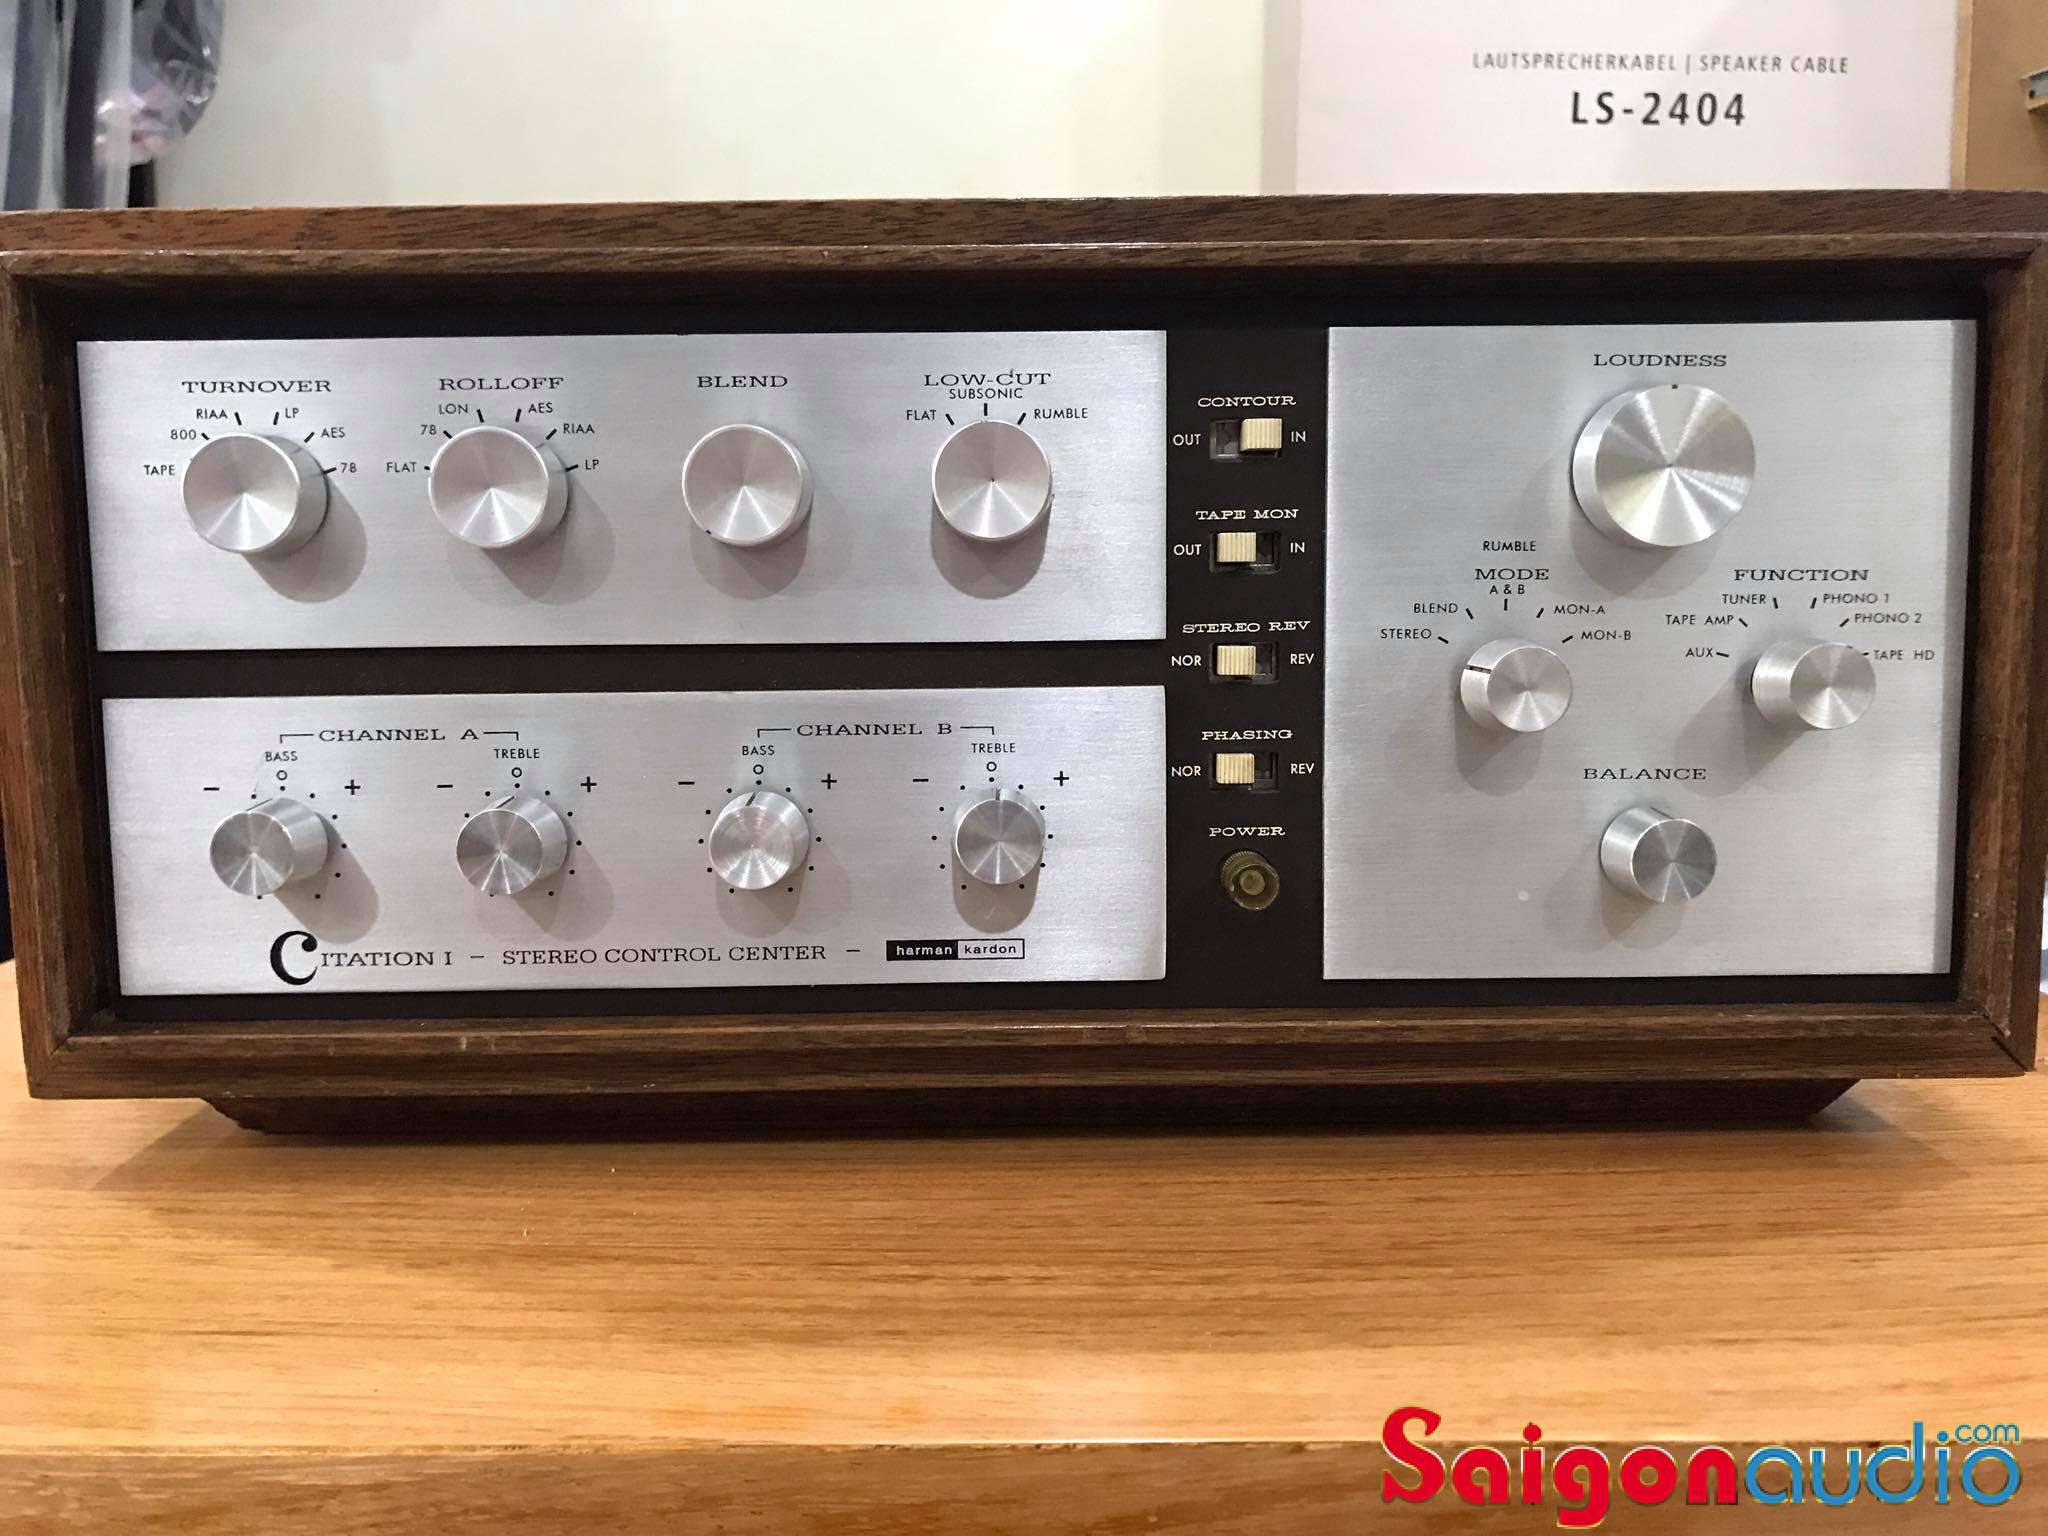 Pre đèn phono Harman Kardon Citation I